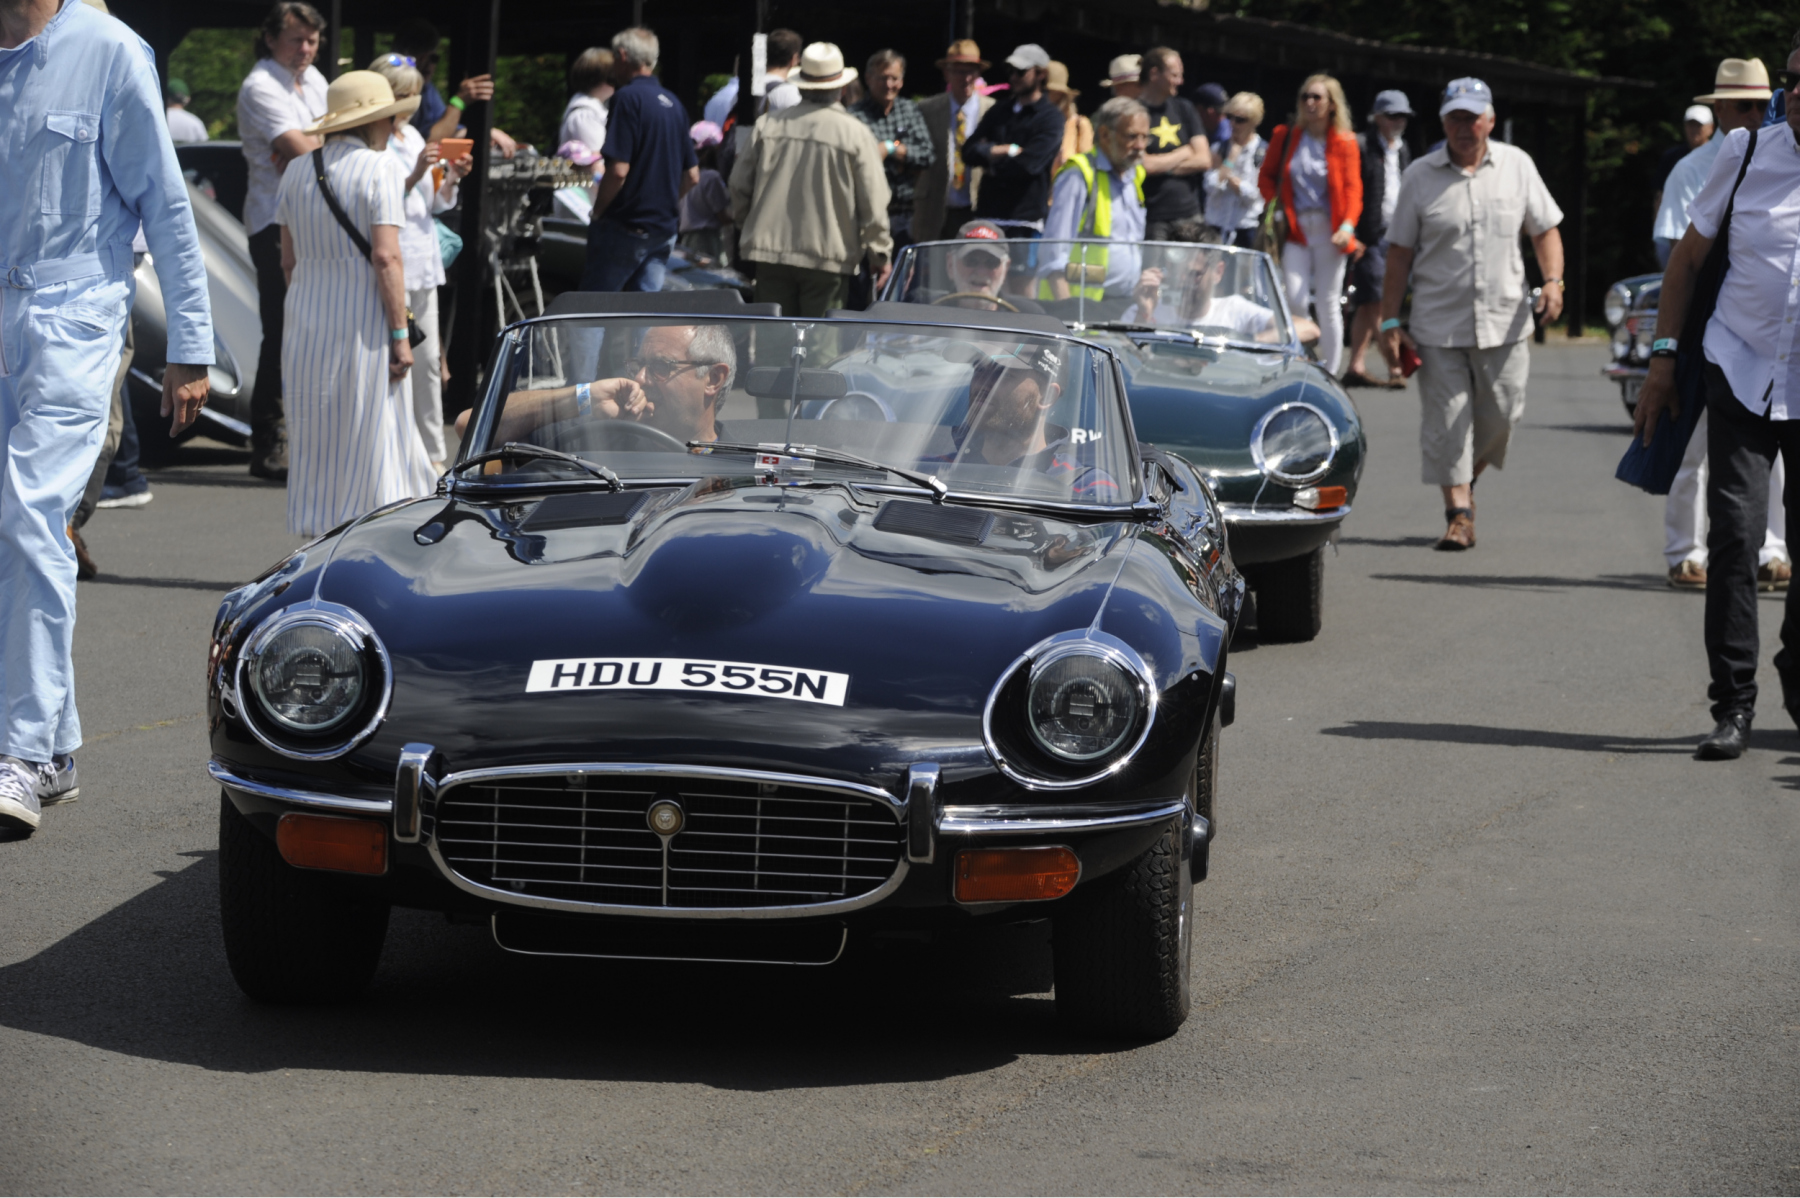 E-type-60-Saturday-photo-by-Abigail-Humphries-505